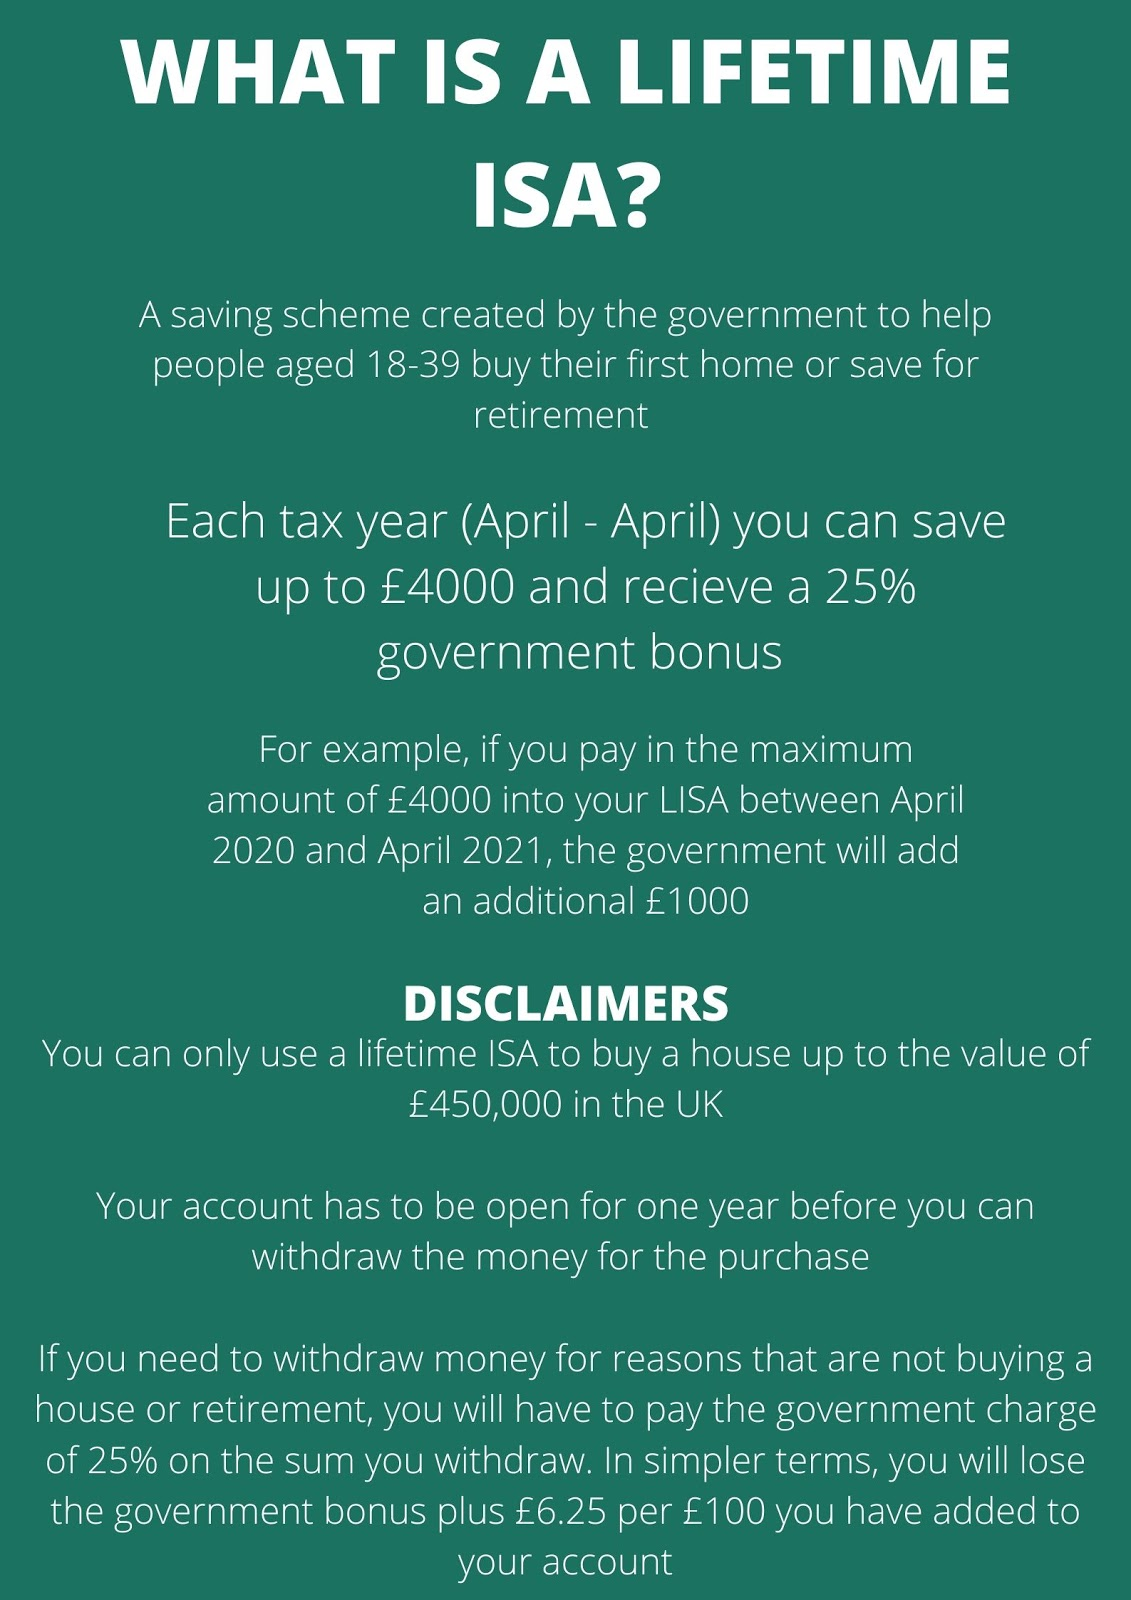 A dark green background with white writing explaining the key points of a Lifetime ISA